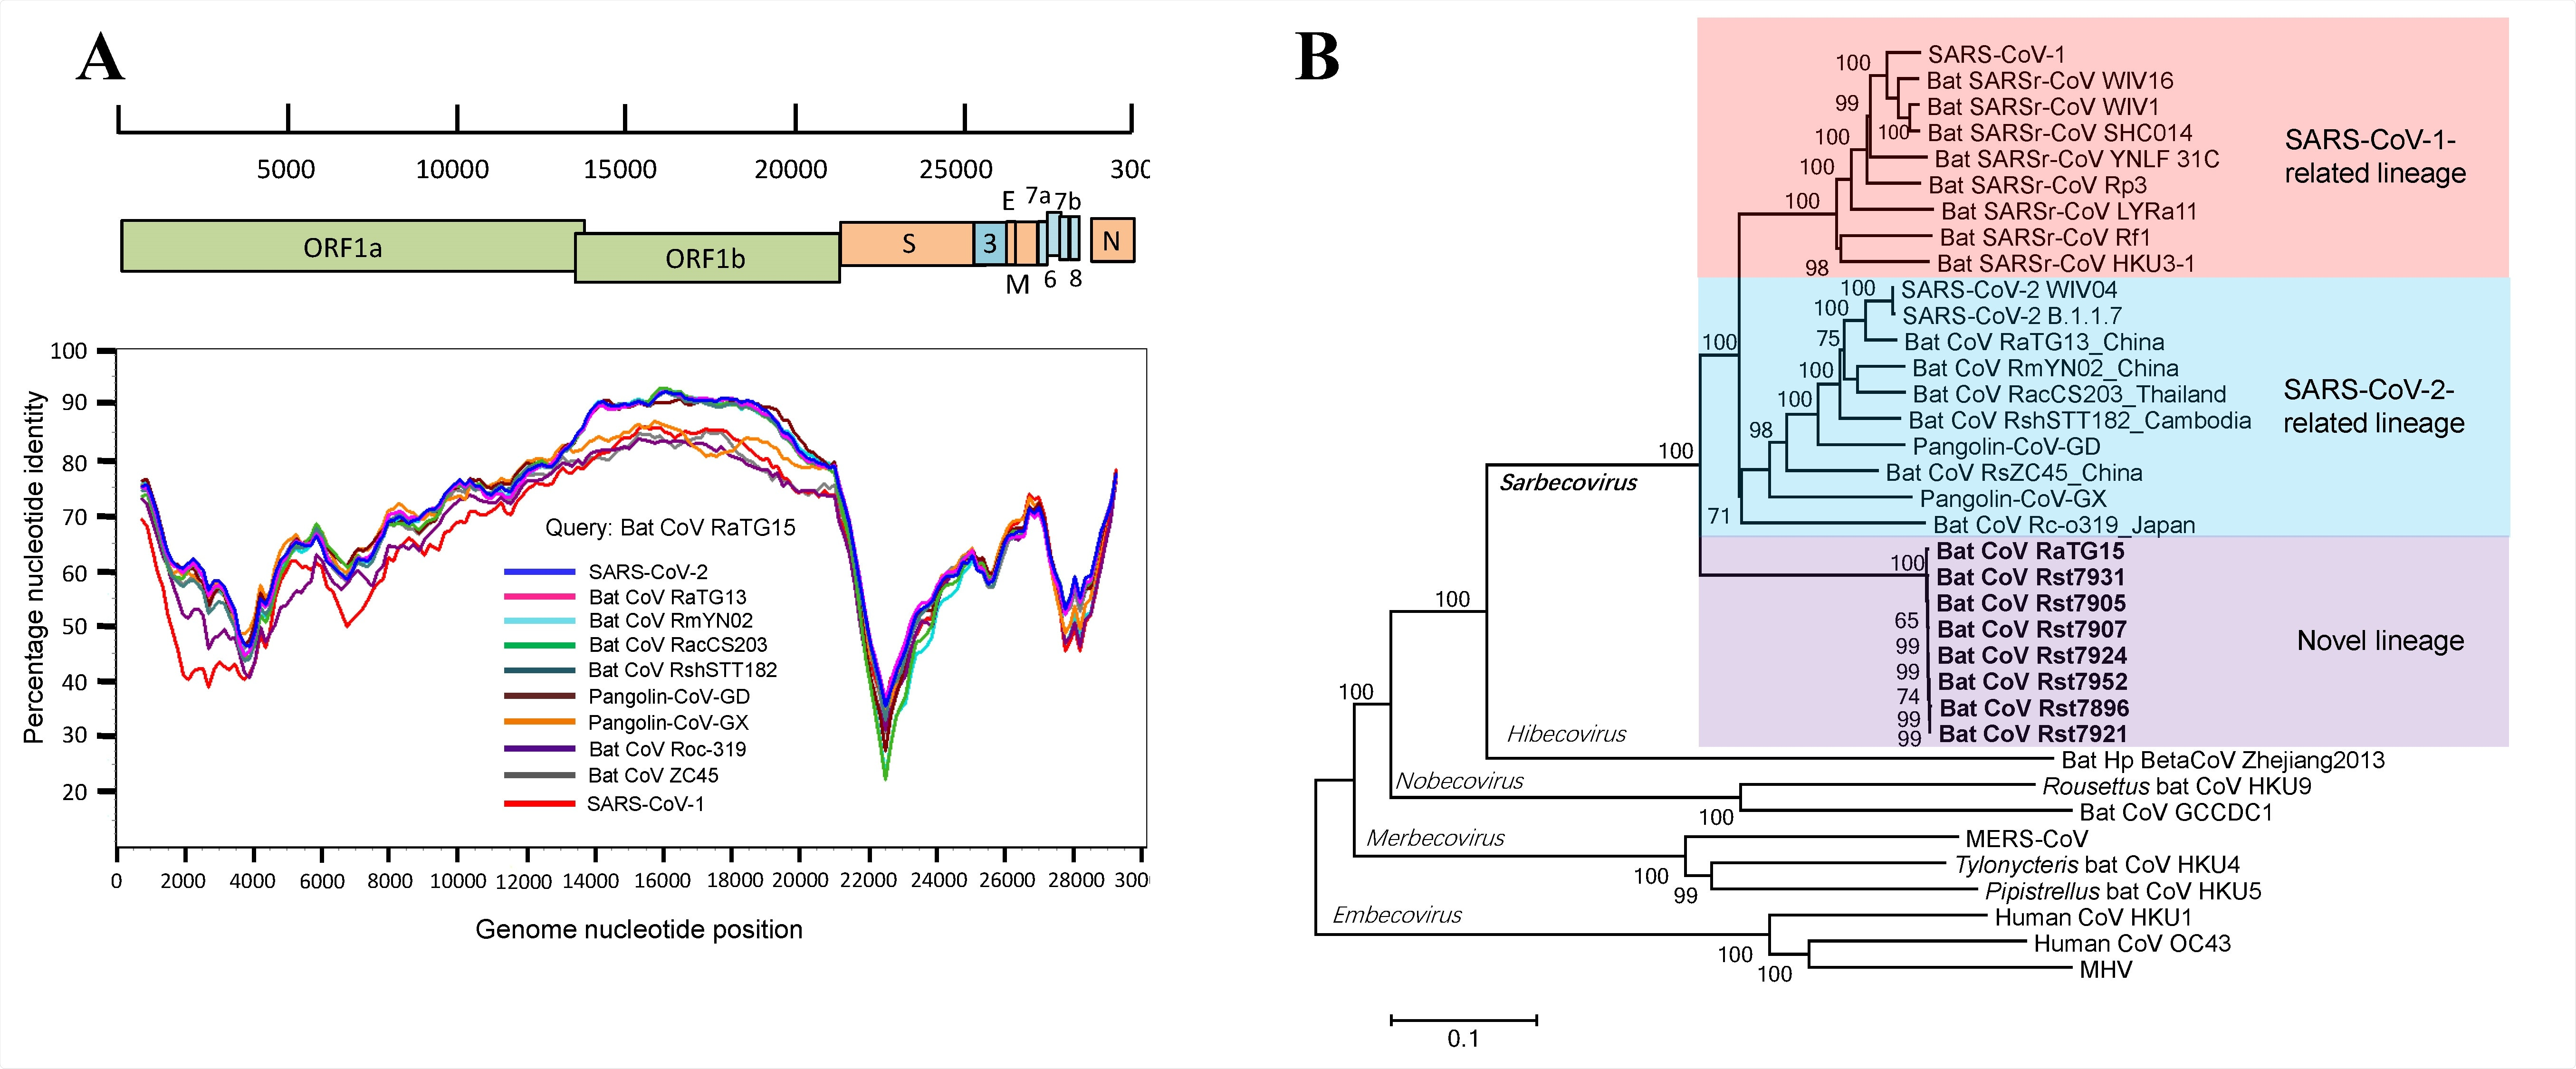 Discovery of a novel lineage of bat SARSr-CoVs. (A) Similarity plot analysis based on the full-length genome sequence of bat SARSr-CoV RaTG15. Full409 length genome sequences of SARS-CoV-1, SARS-CoV-2, bat and pangolin CoVs related to SARS-CoV-2 were used as reference sequences. The analysis was performed with the Kimura model, a window size of 1500 base pairs and a step size of 150 base pairs. (B) Phylogenetic tree based on complete genome sequences of betacoronaviruses. The trees were constructed by the Neighbour-joining method using the Jukes-Cantor model with bootstrap values determined by 1000 replicates. Bootstraps /> 50% are shown. The scale bars represent 0.1 substitutions per nucleotide position. The novel SARSr-CoVs characterized in this study are shown in bold. Ra, Rhinolophus affinis; Rst, Rhinolophus stheno; Rsh, Rhinolophus shameli; Rs, Rhinolophus sinicus; Rac, Rhinolophus acuminatus; Rm, Rhinolophus malayanus; Rc, Rhinolophus cornutus; MHV, murine hepatitis virus.